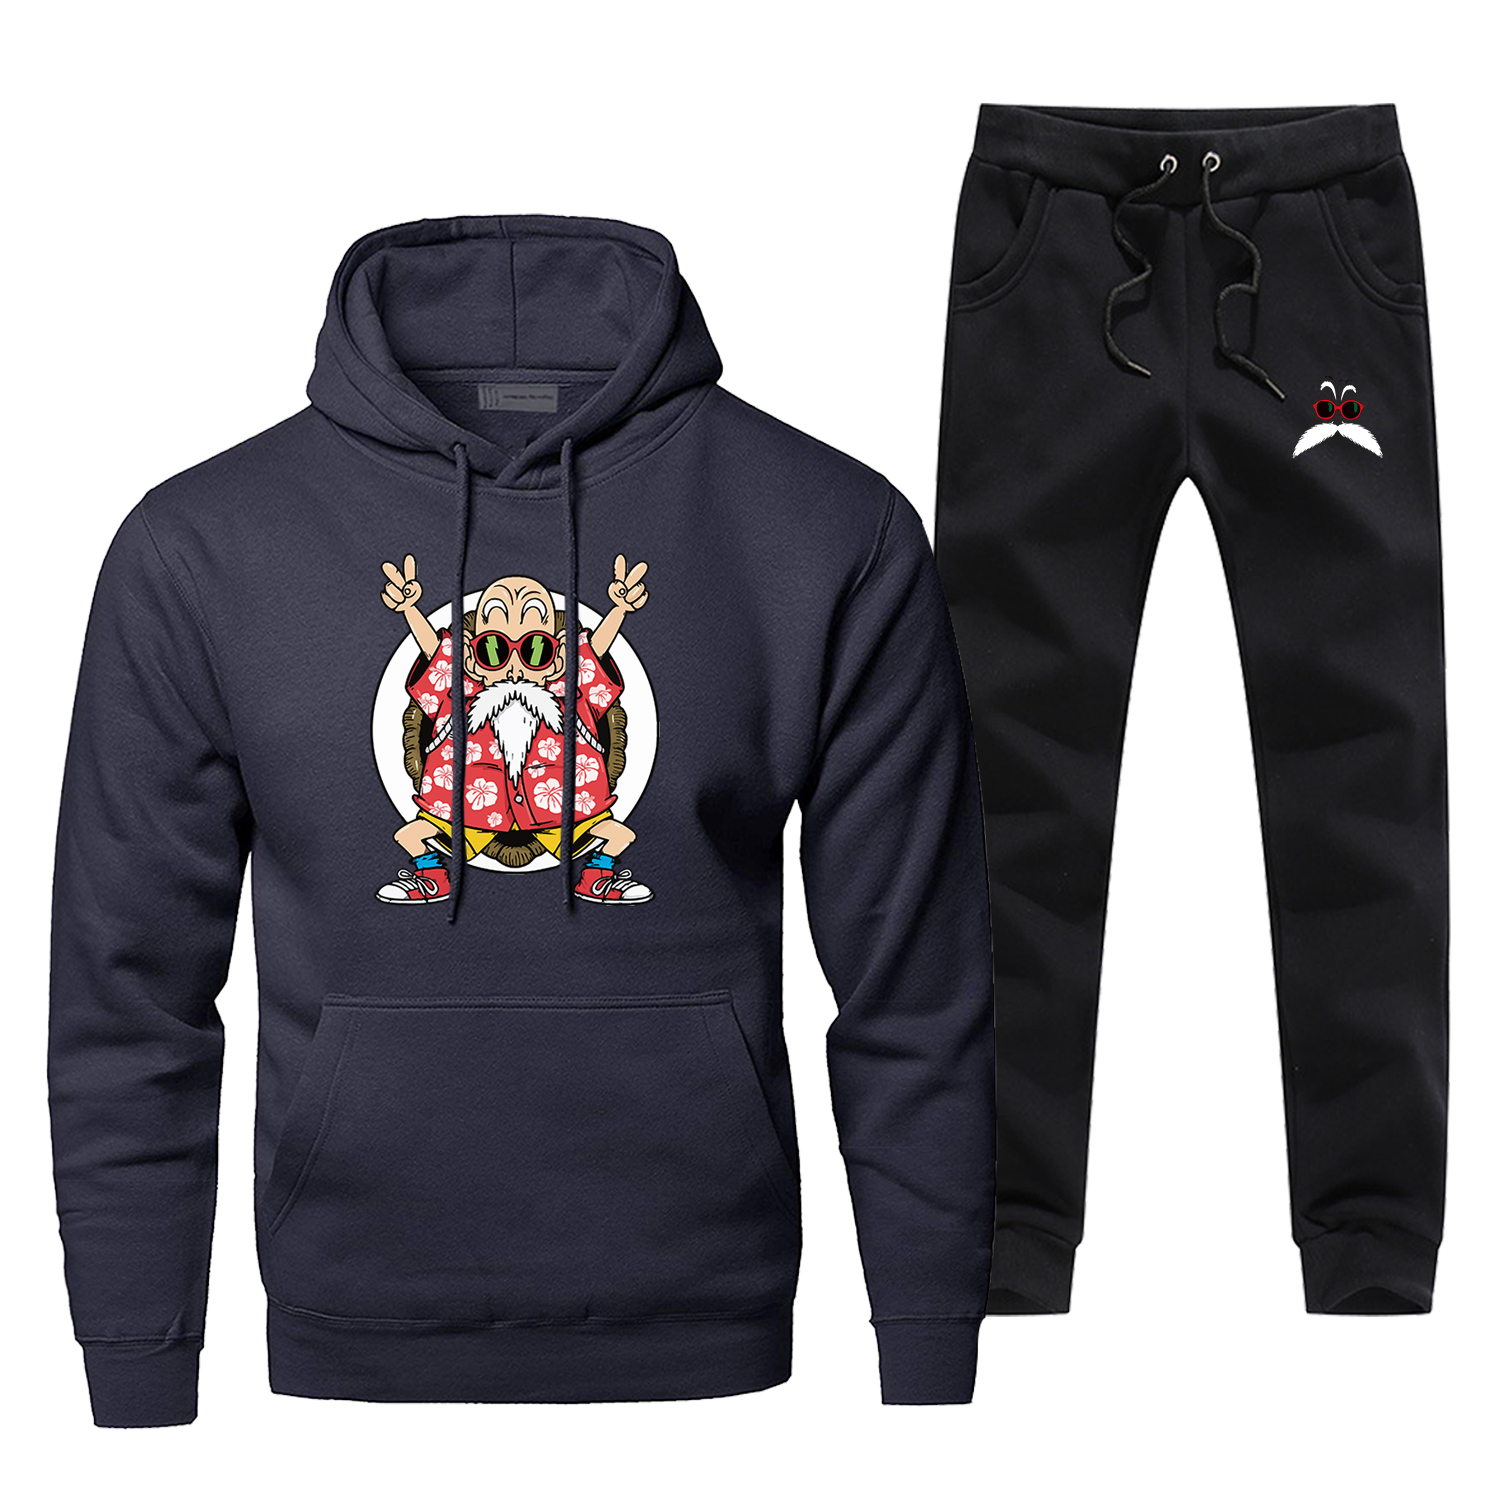 Japan Anime Dragon Ball Hoodies Sweatshirt Master Roshi Men's Full Suit Tracksuit Harajuku Sweatpants Streetwear Chandal Hombre